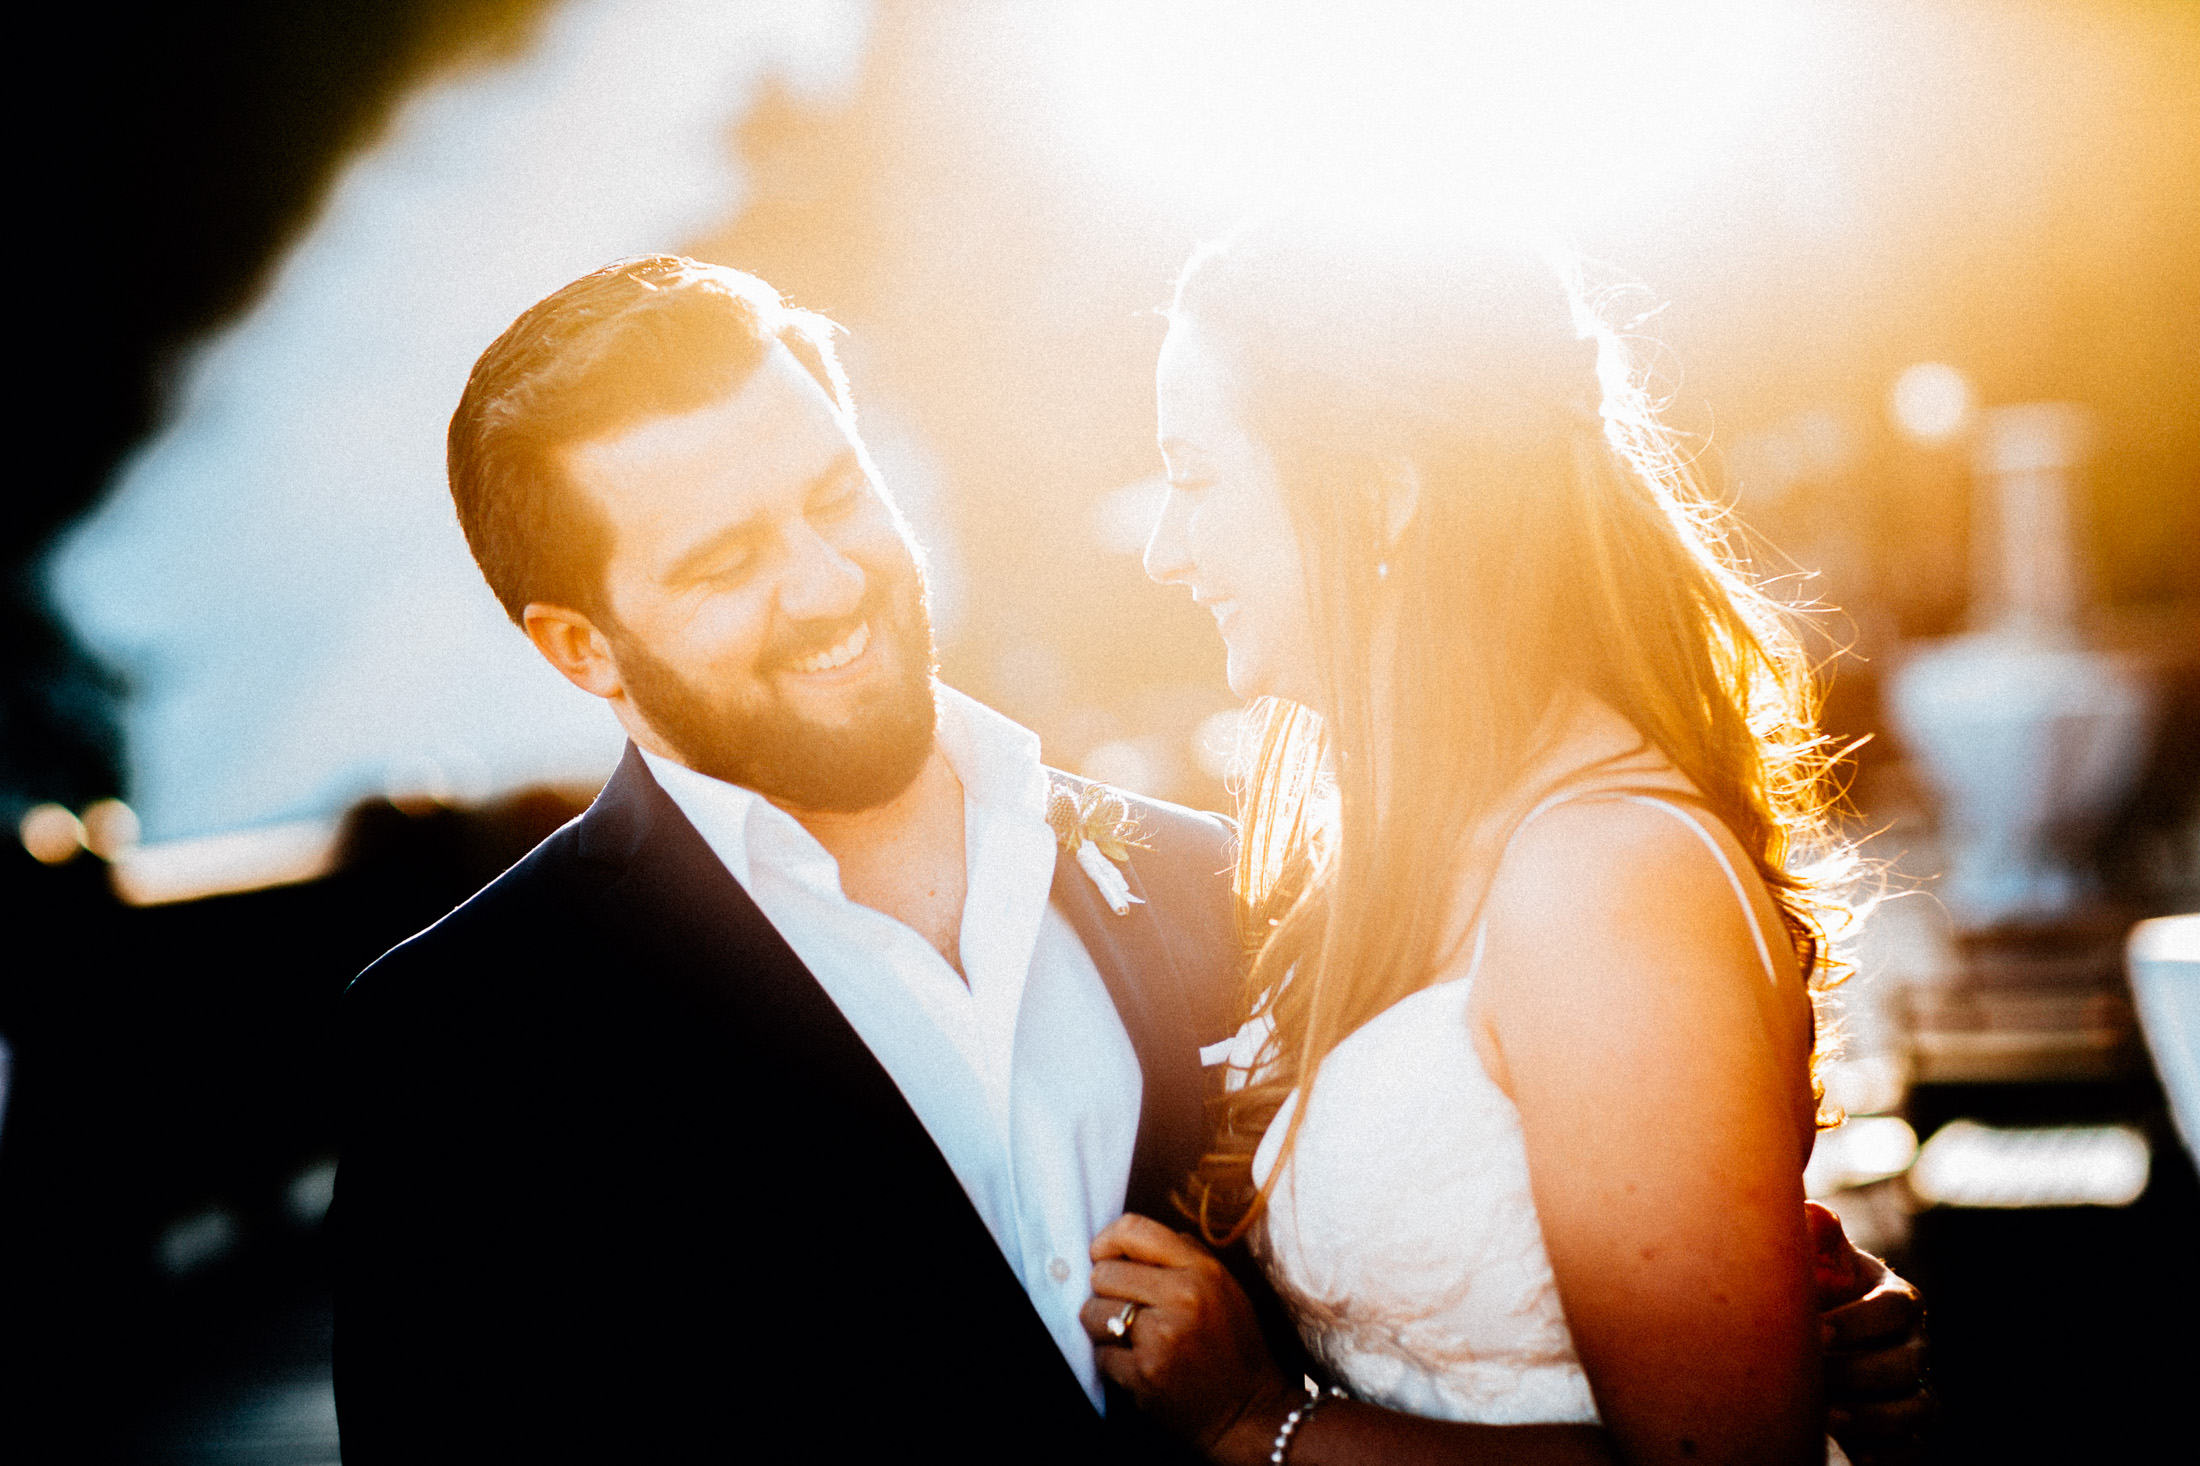 Bride and groom laugh together in sunlight.